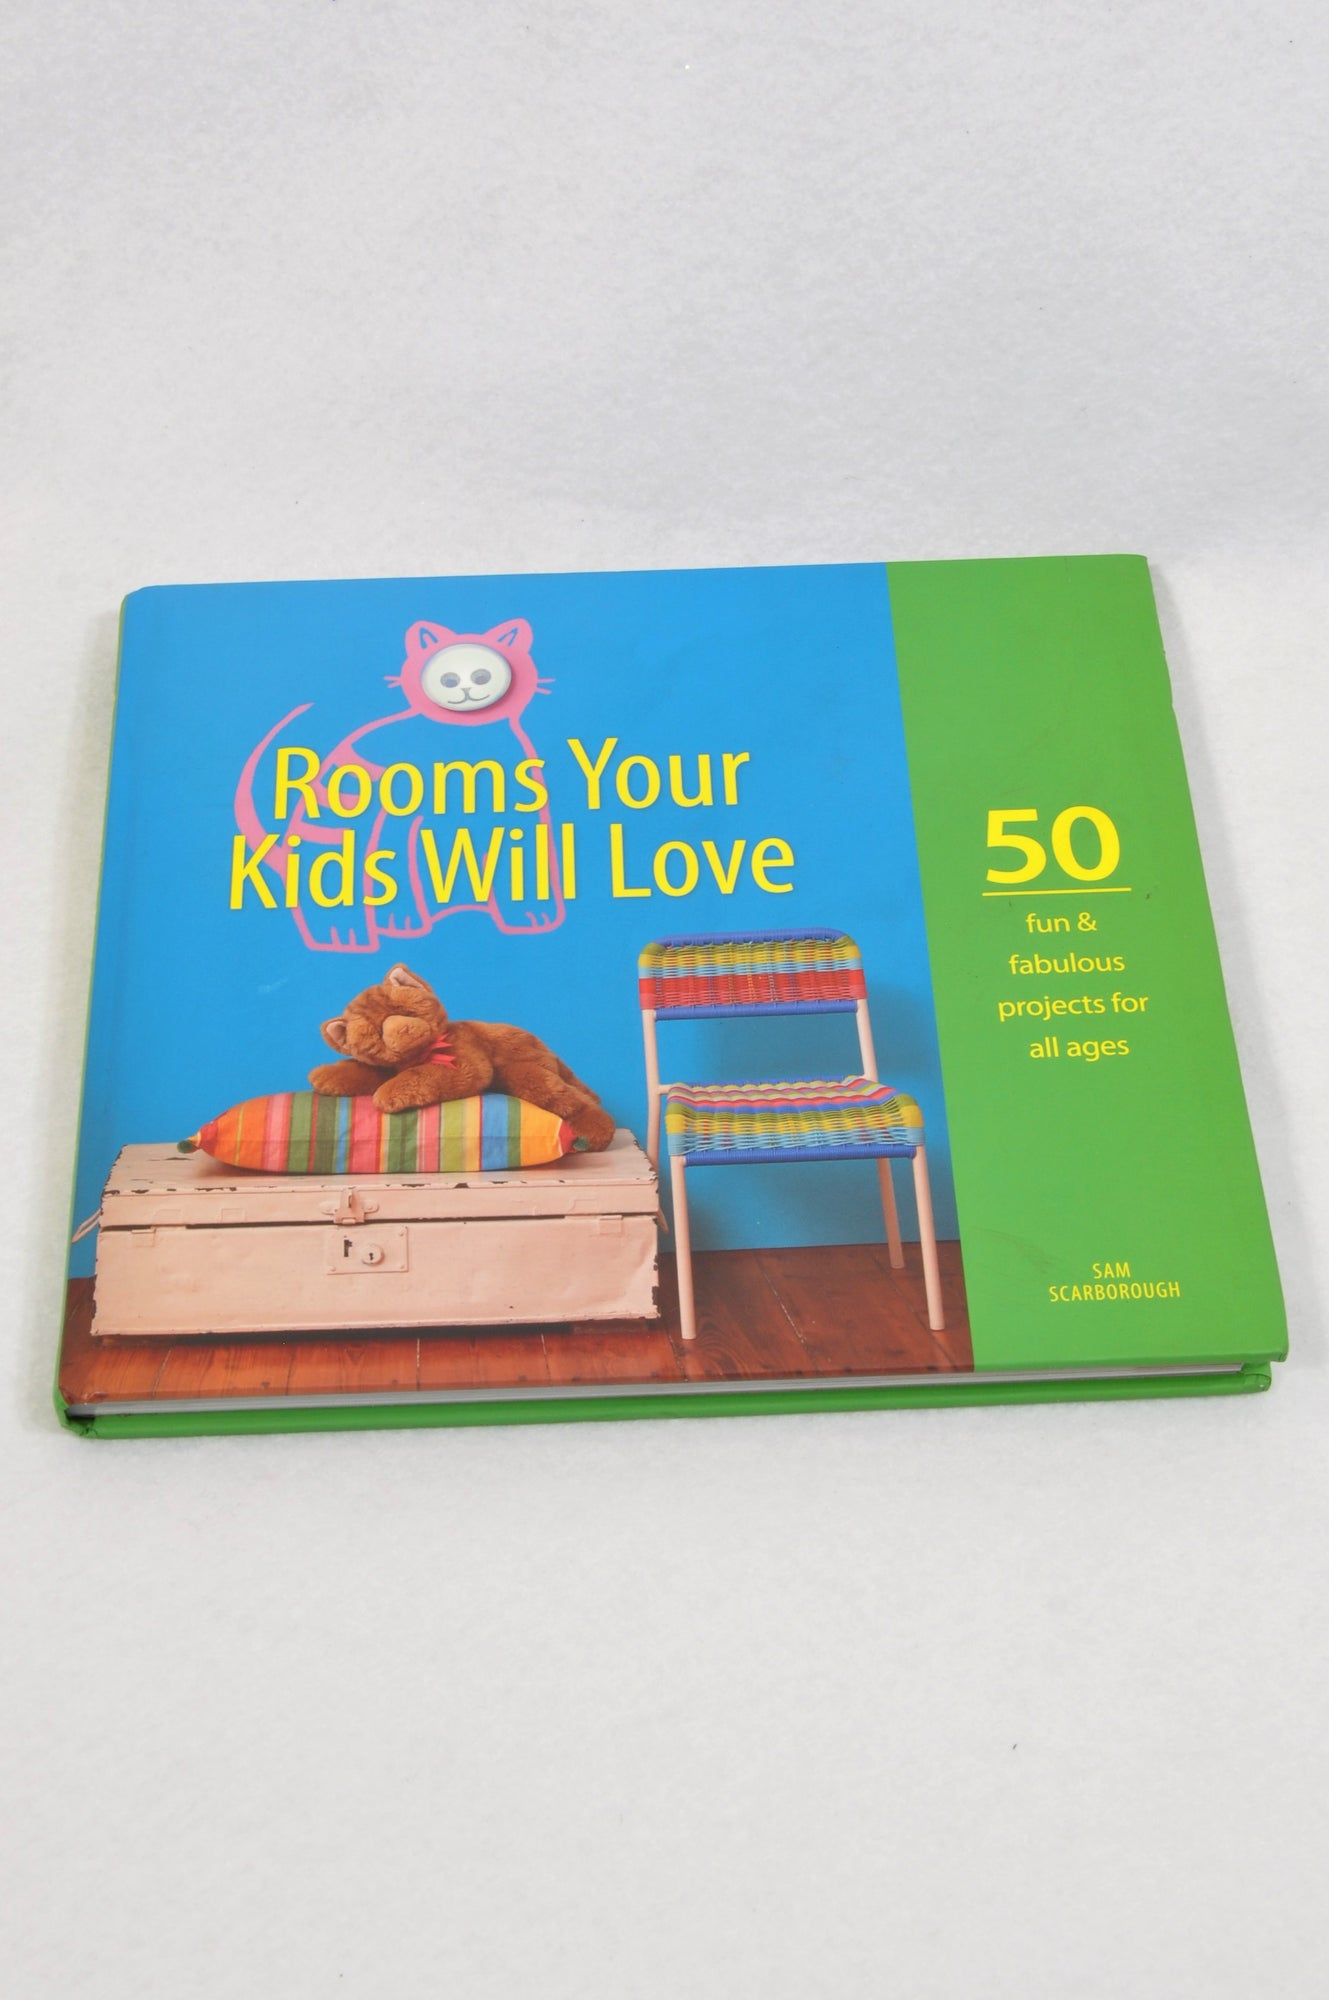 Unbranded Rooms Your Kids Will Love Parenting Book Unisex All Ages